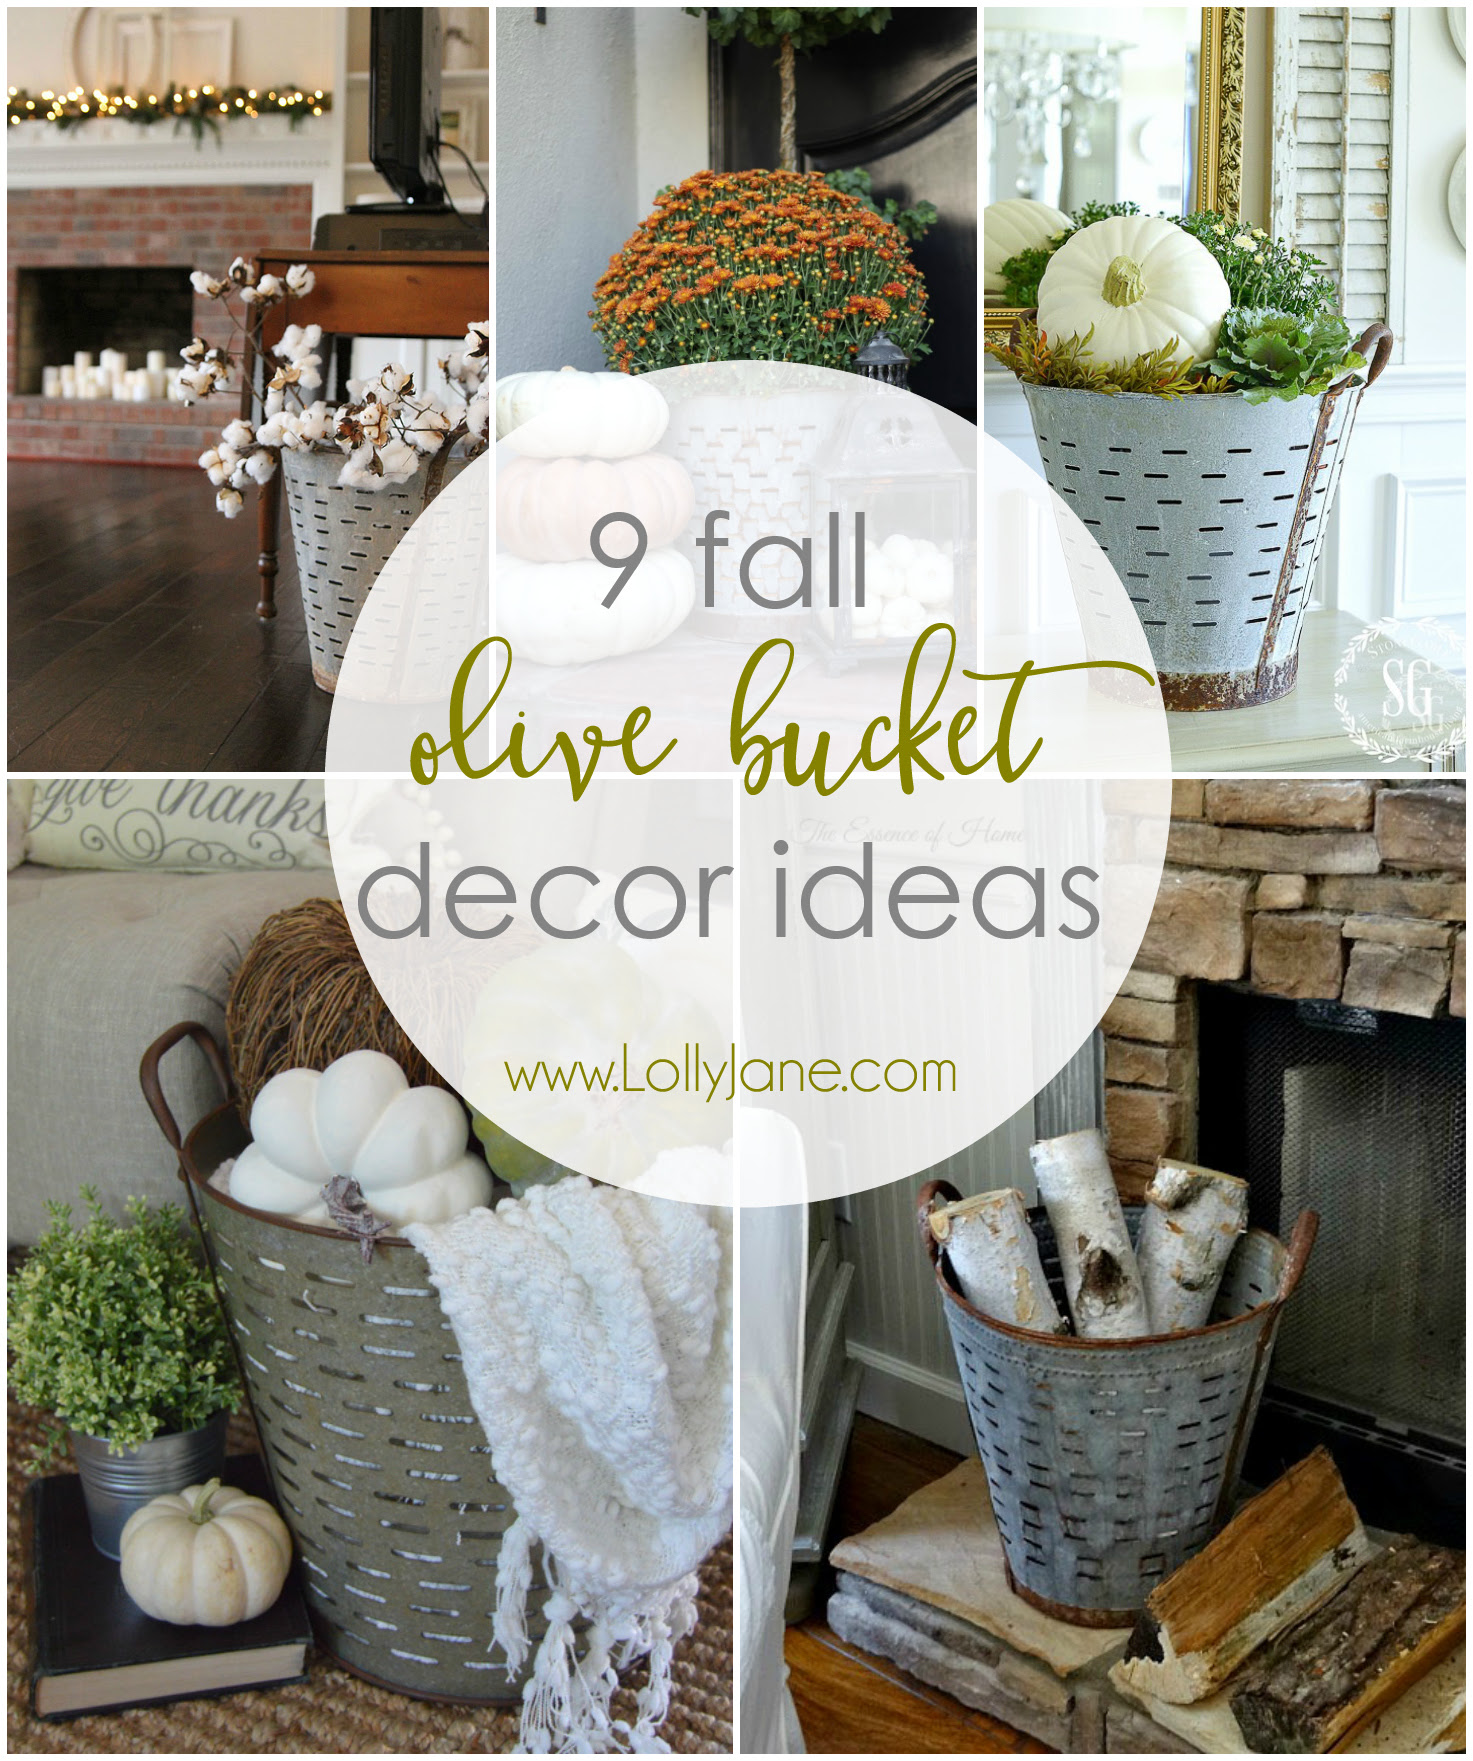 9 Fall Olive Bucket Decor Ideas | Lolly Jane